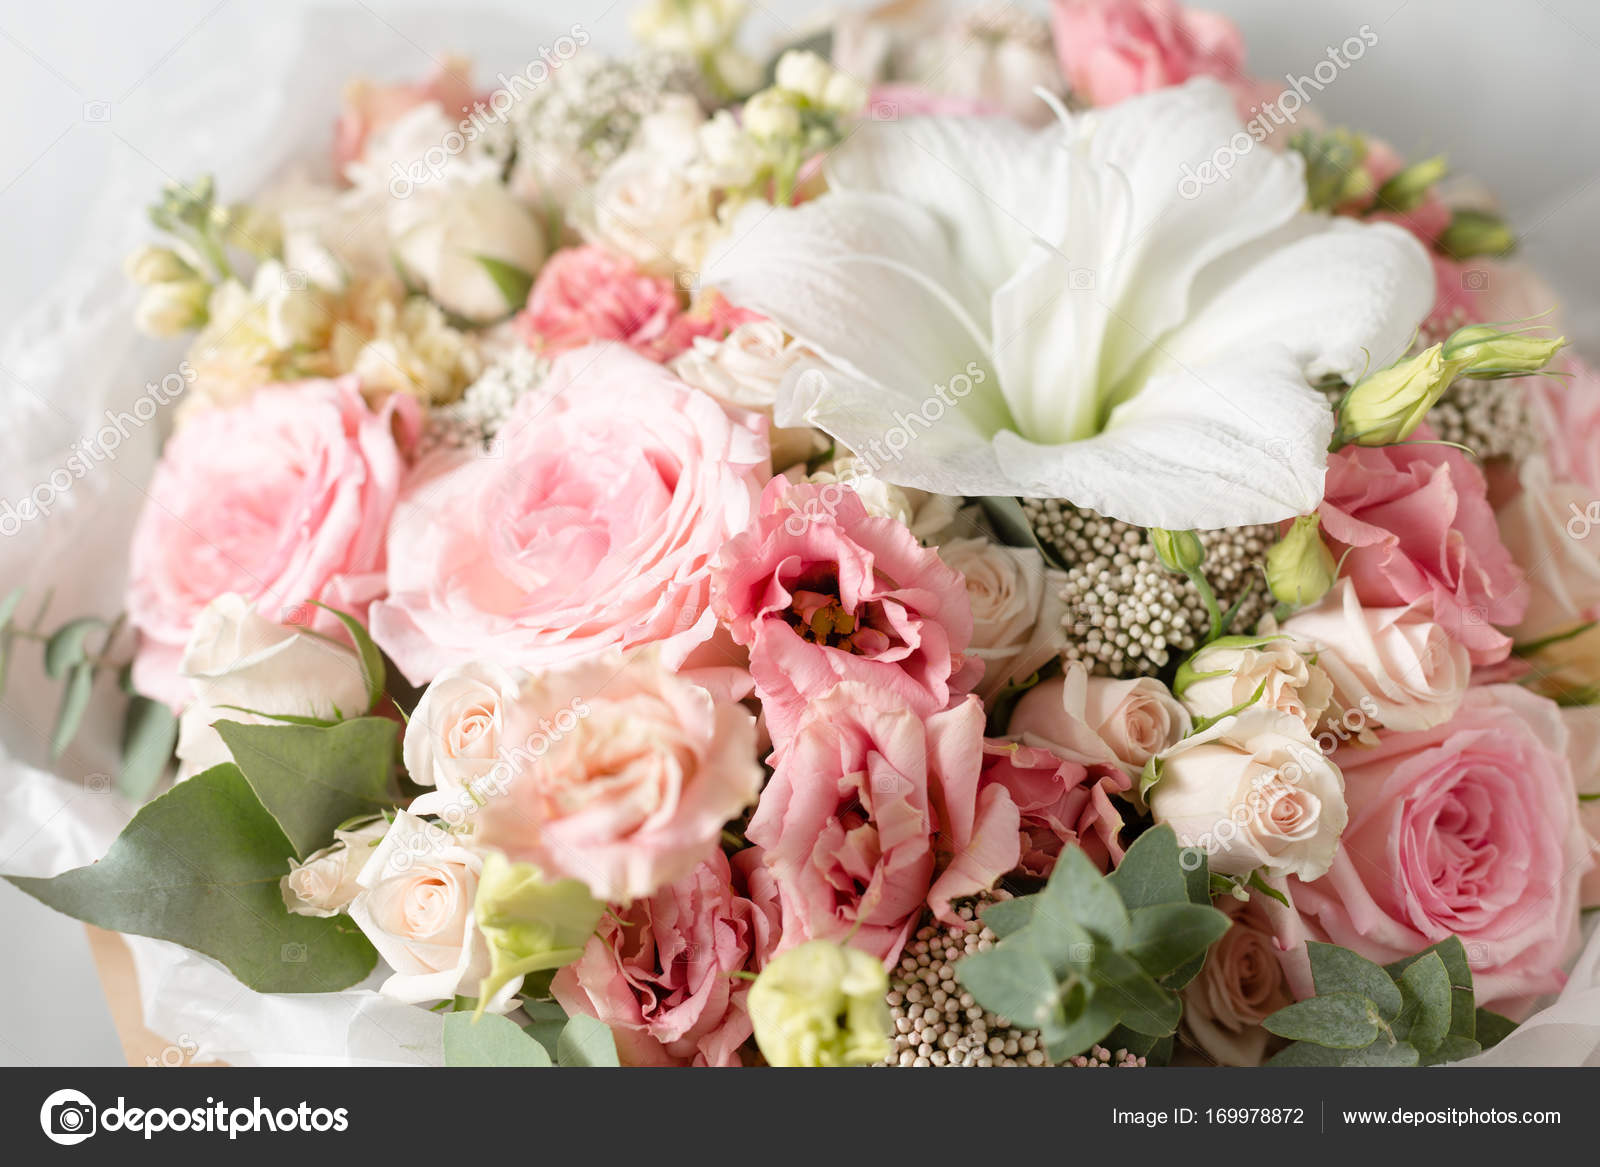 Flower Composition On A Gray Background Wedding And Festive Decor